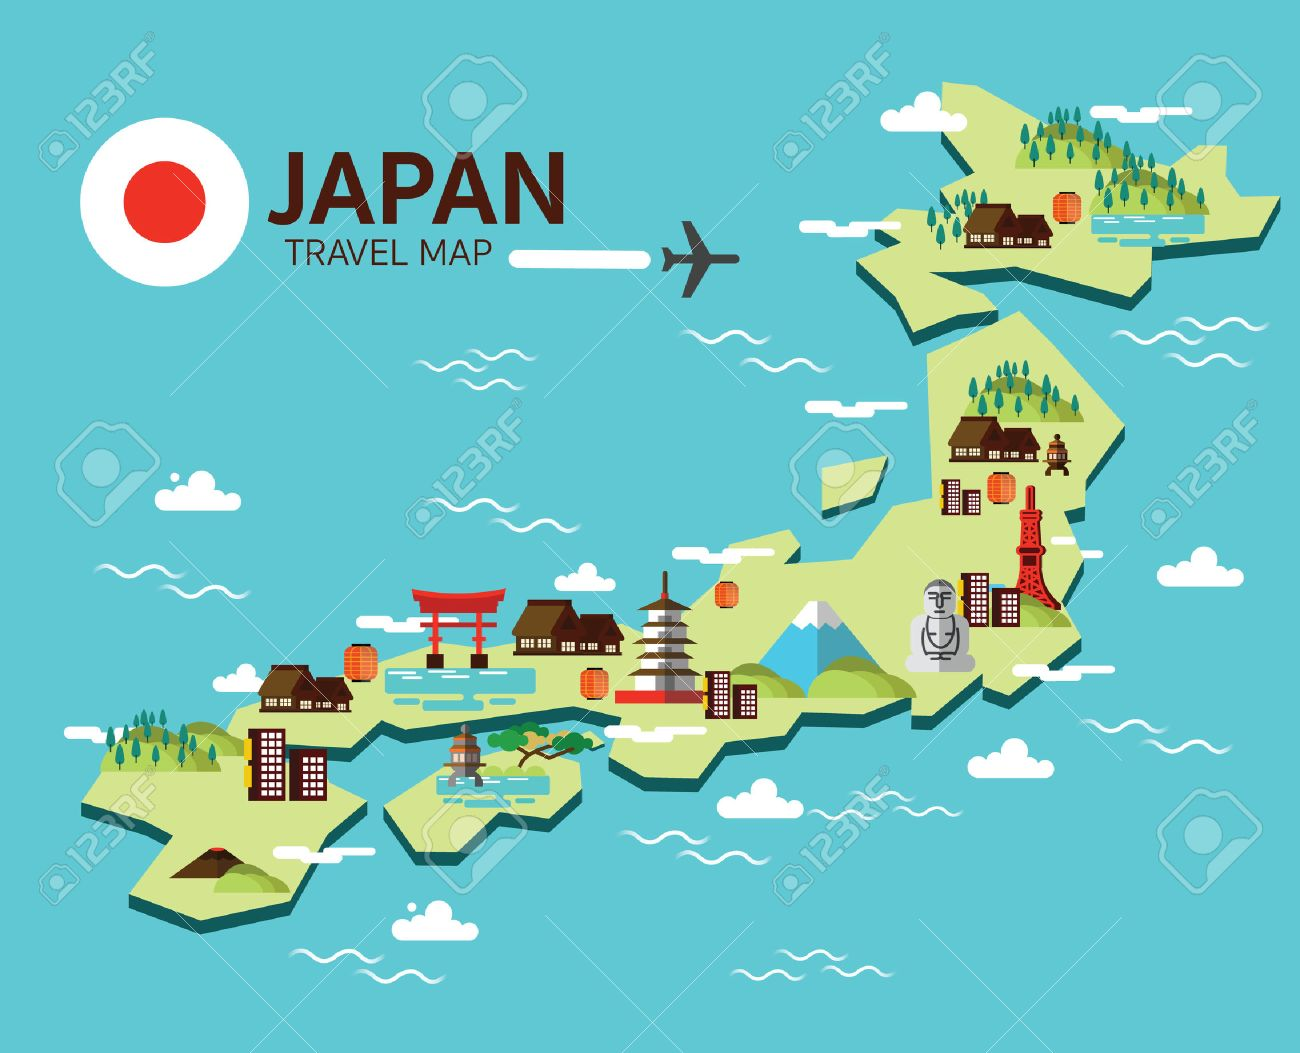 Japan landmark and travel map. Flat design elements and icons. vector illustration - 46076704